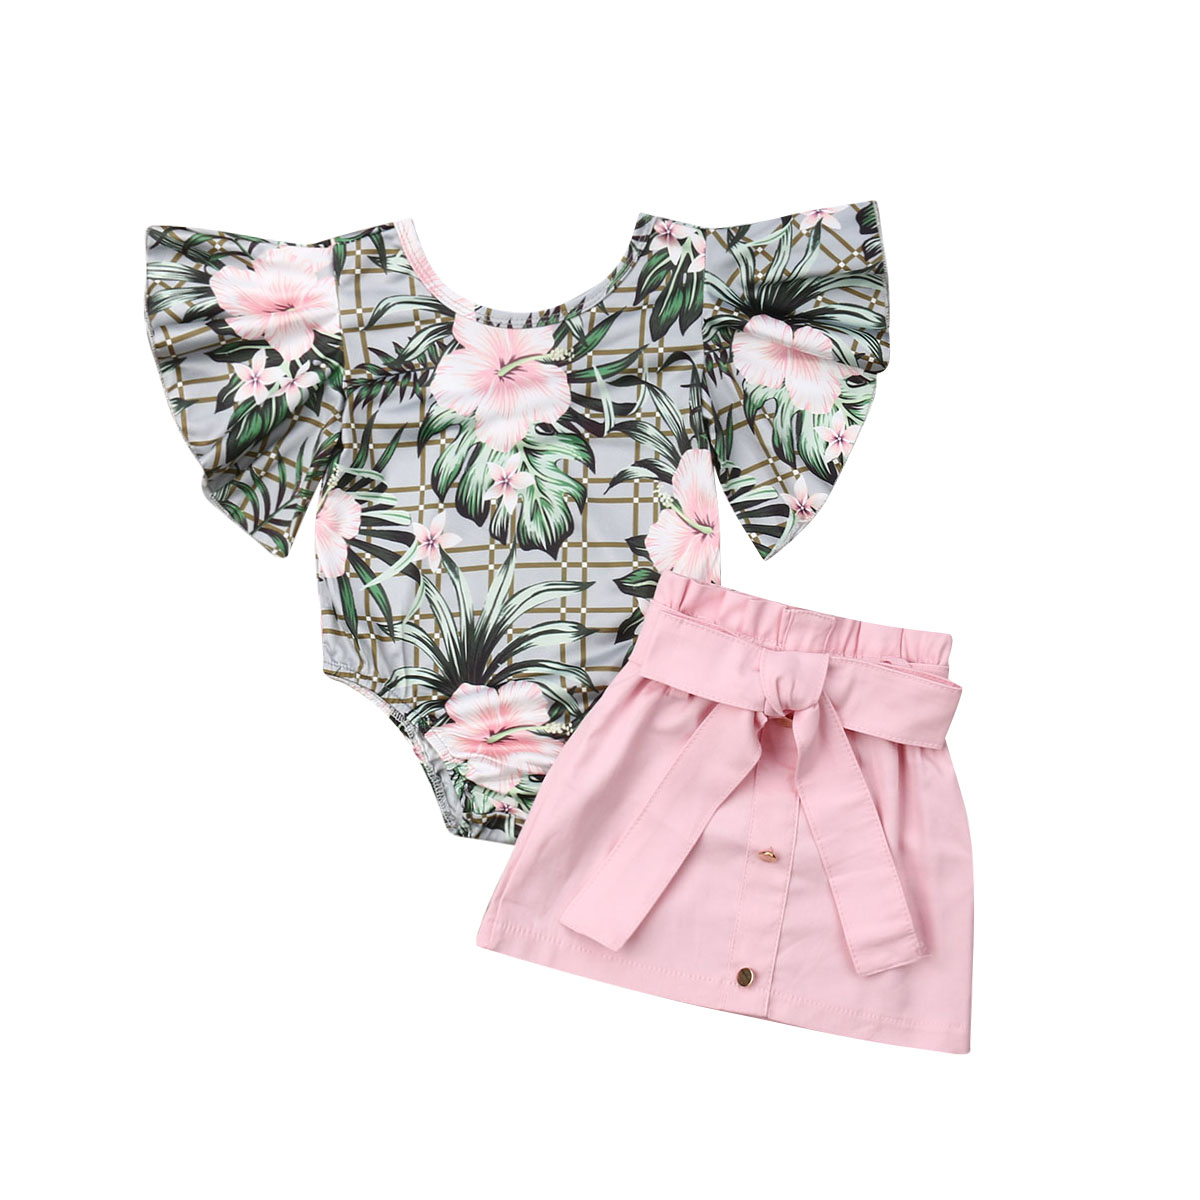 Baby Girl 12M-4T Kids Summer Toddler Outfits Clothes Ruffle Romper Floral Tops+Skirt 2PCS Set Cotton Outfit Clothes